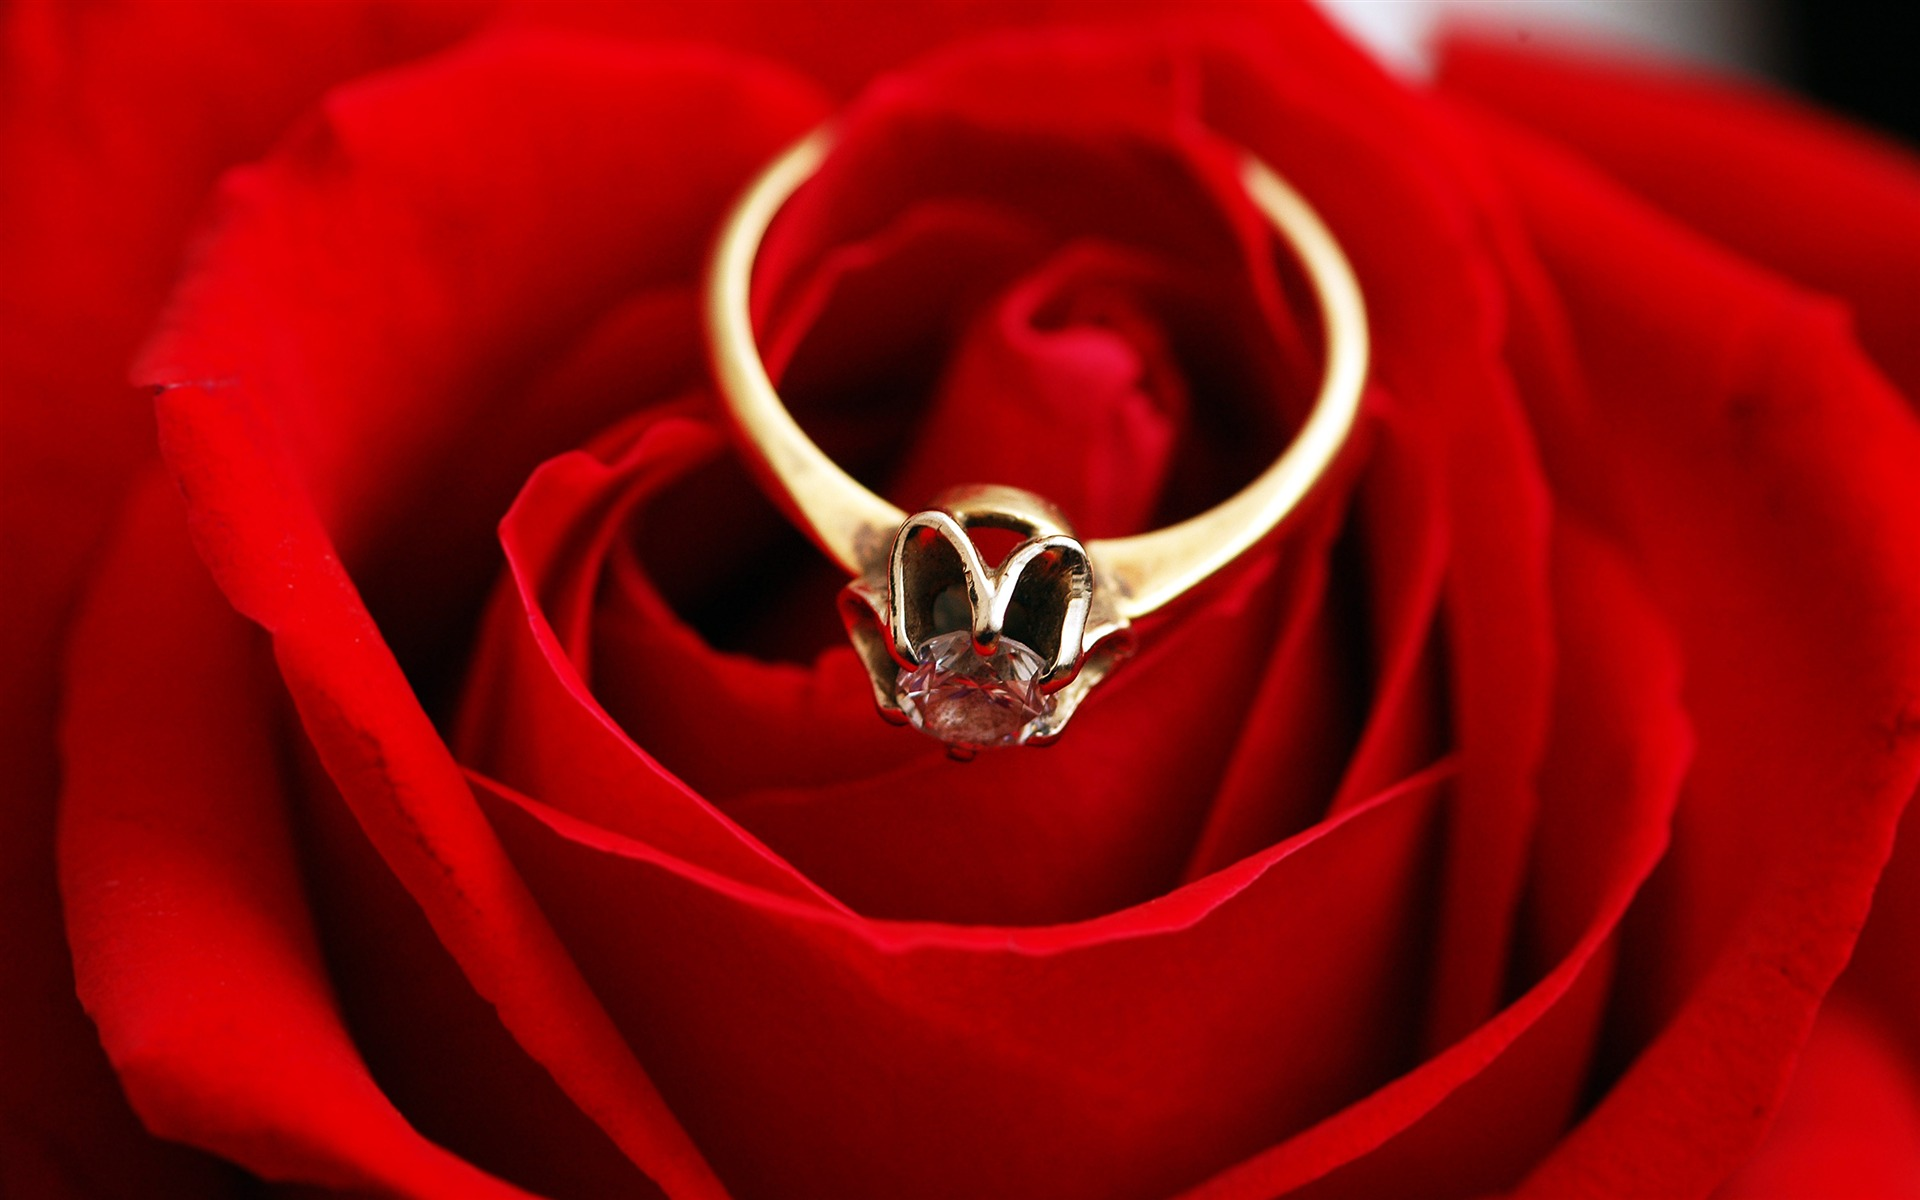 Romantic love golden ring red rose - 1920x1200 wallpaper download